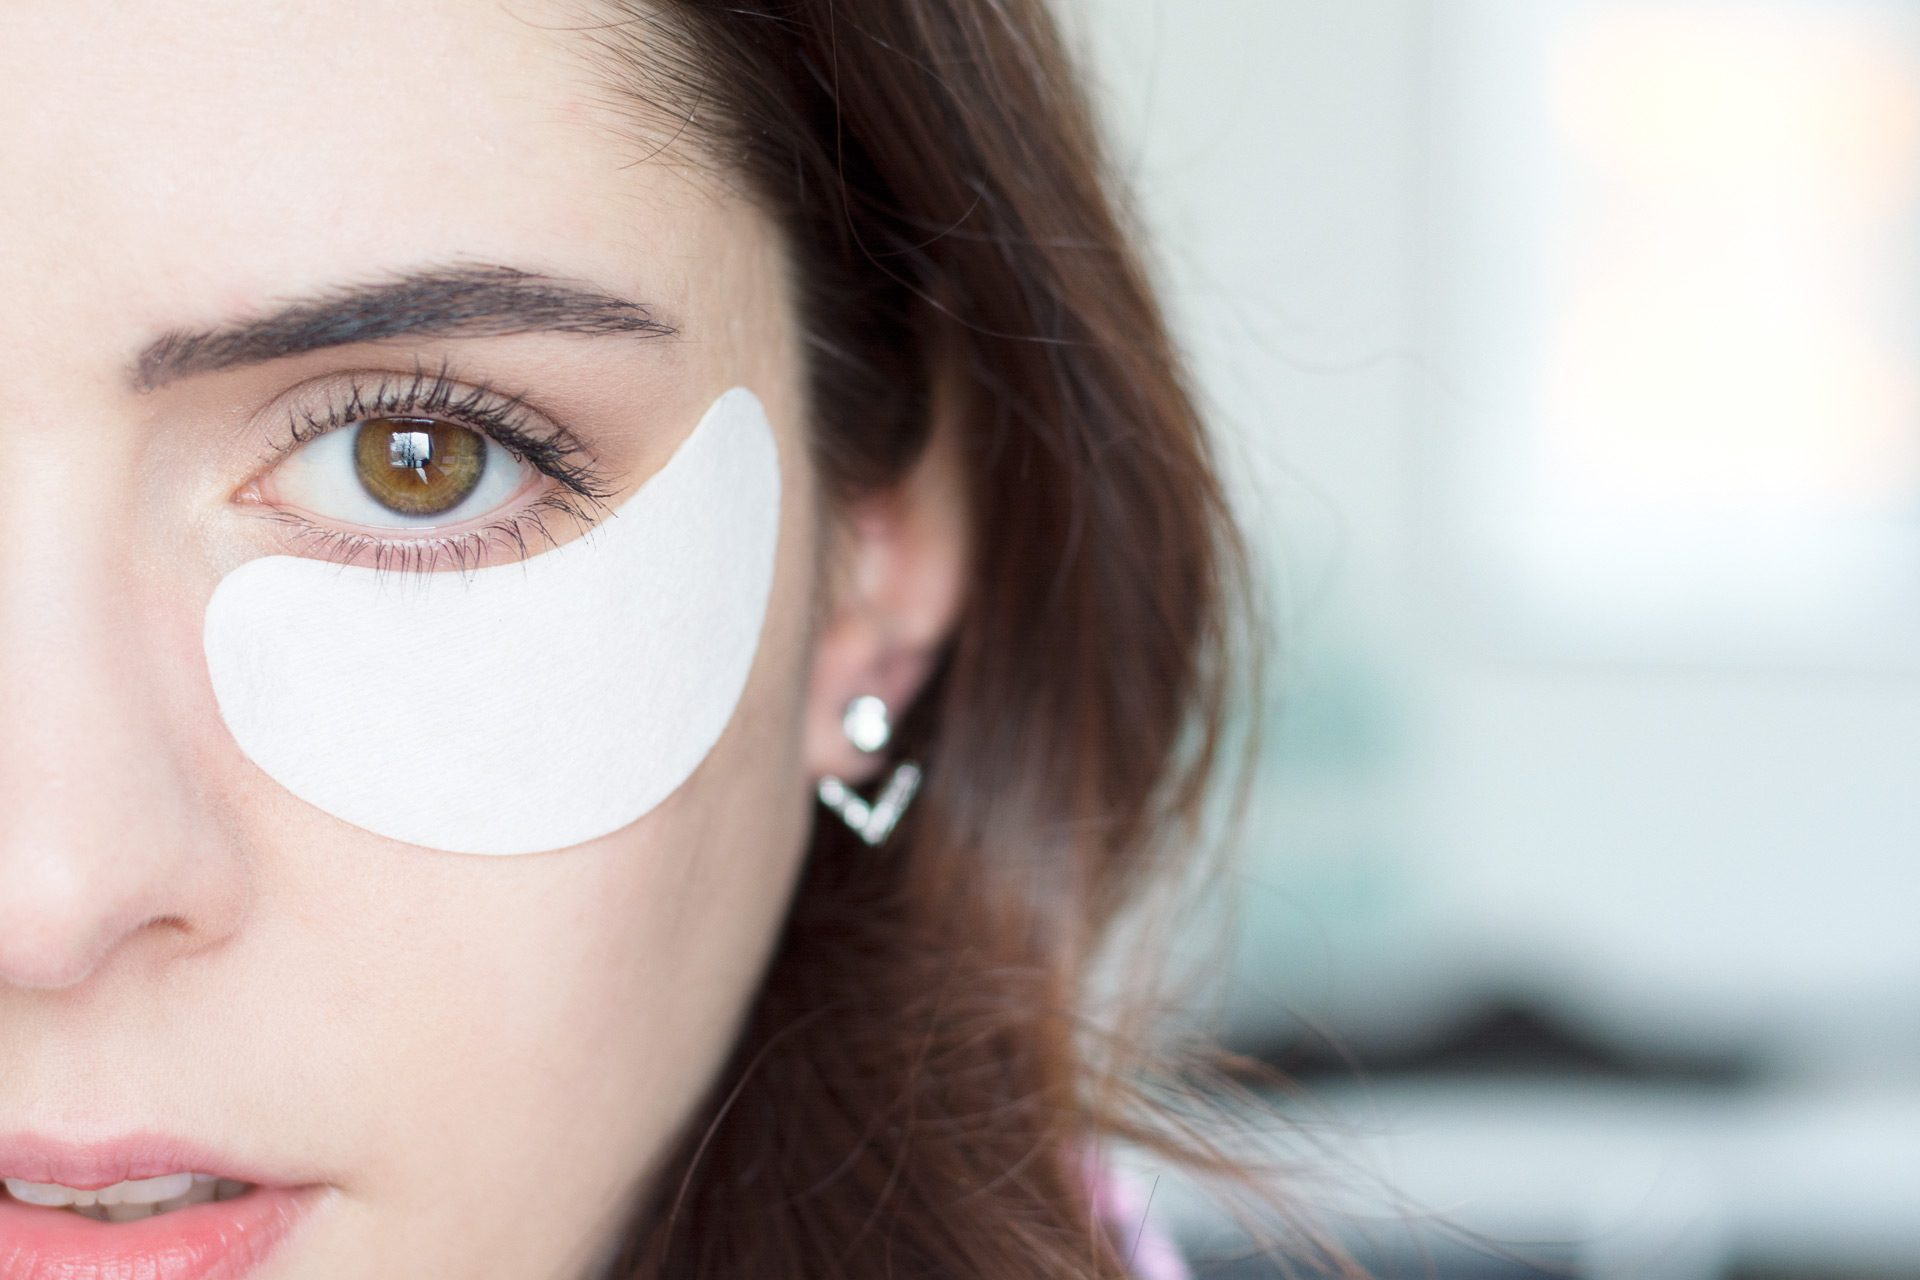 under-eye patches